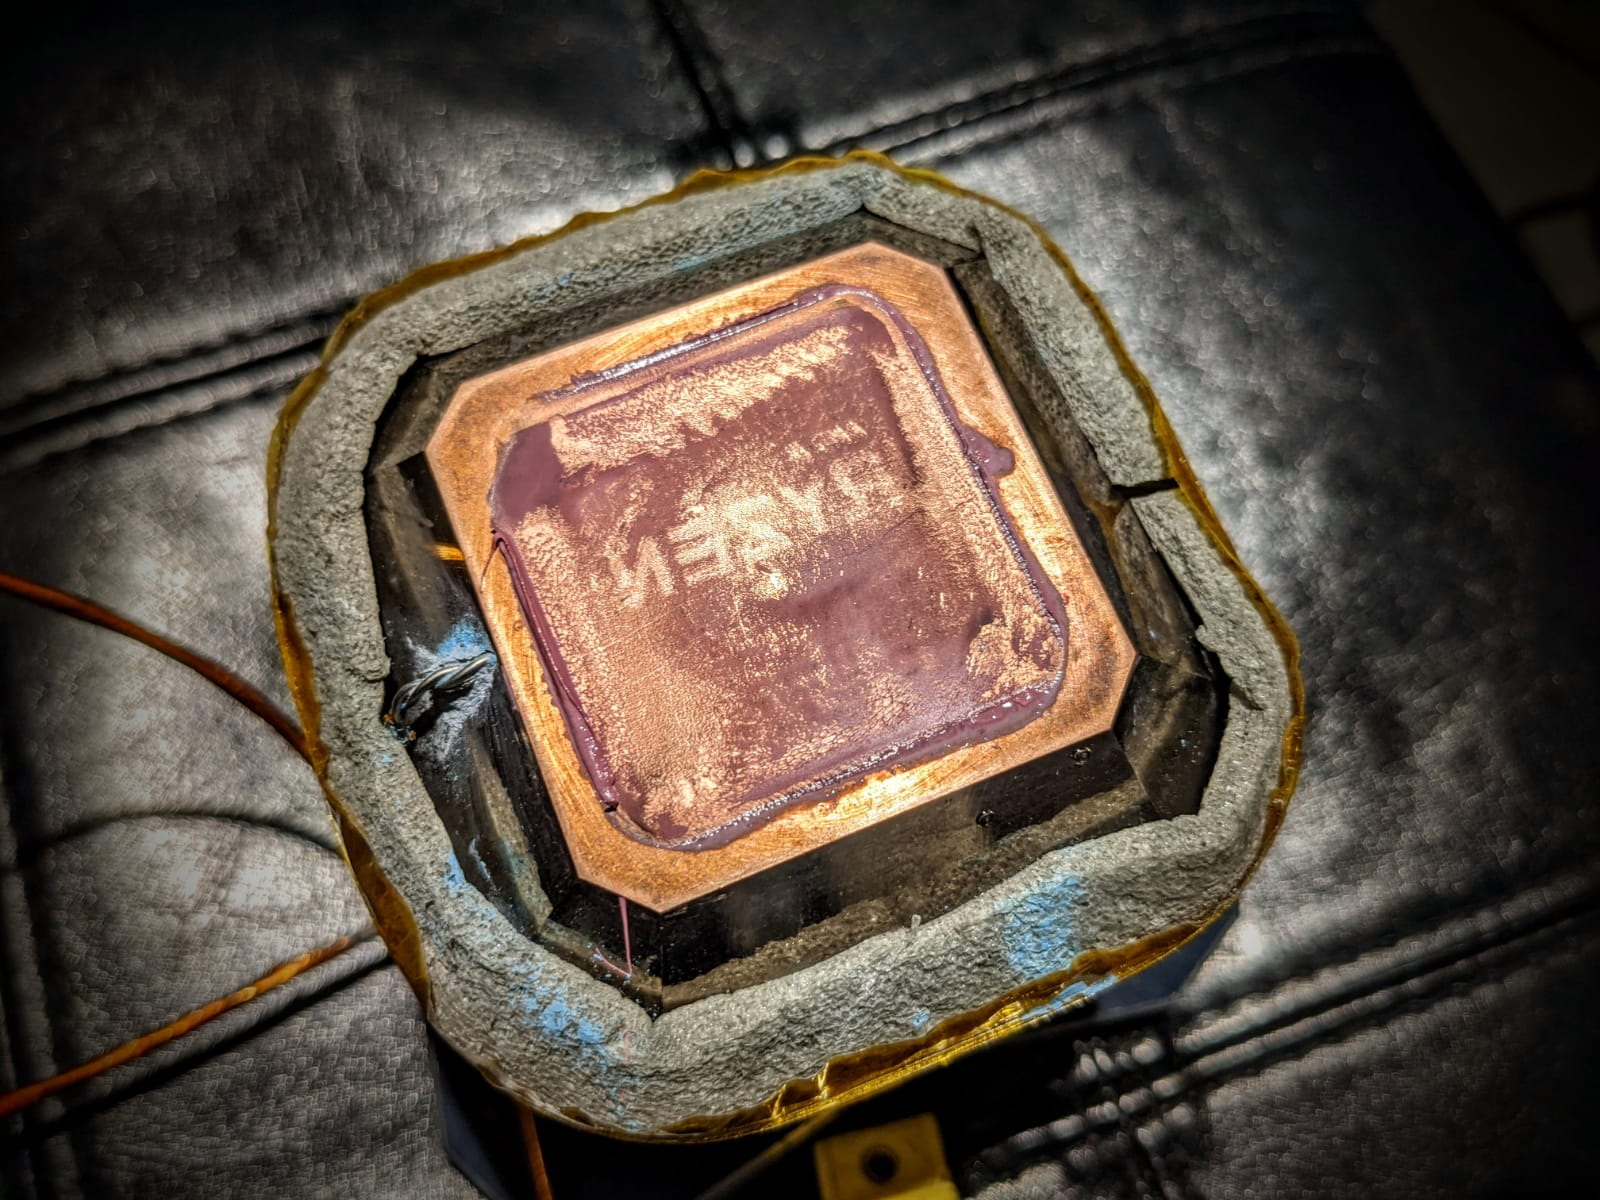 Faster Than Threadripper: How I Overclocked Ryzen 9 5950X to 6 GHz and a World Record